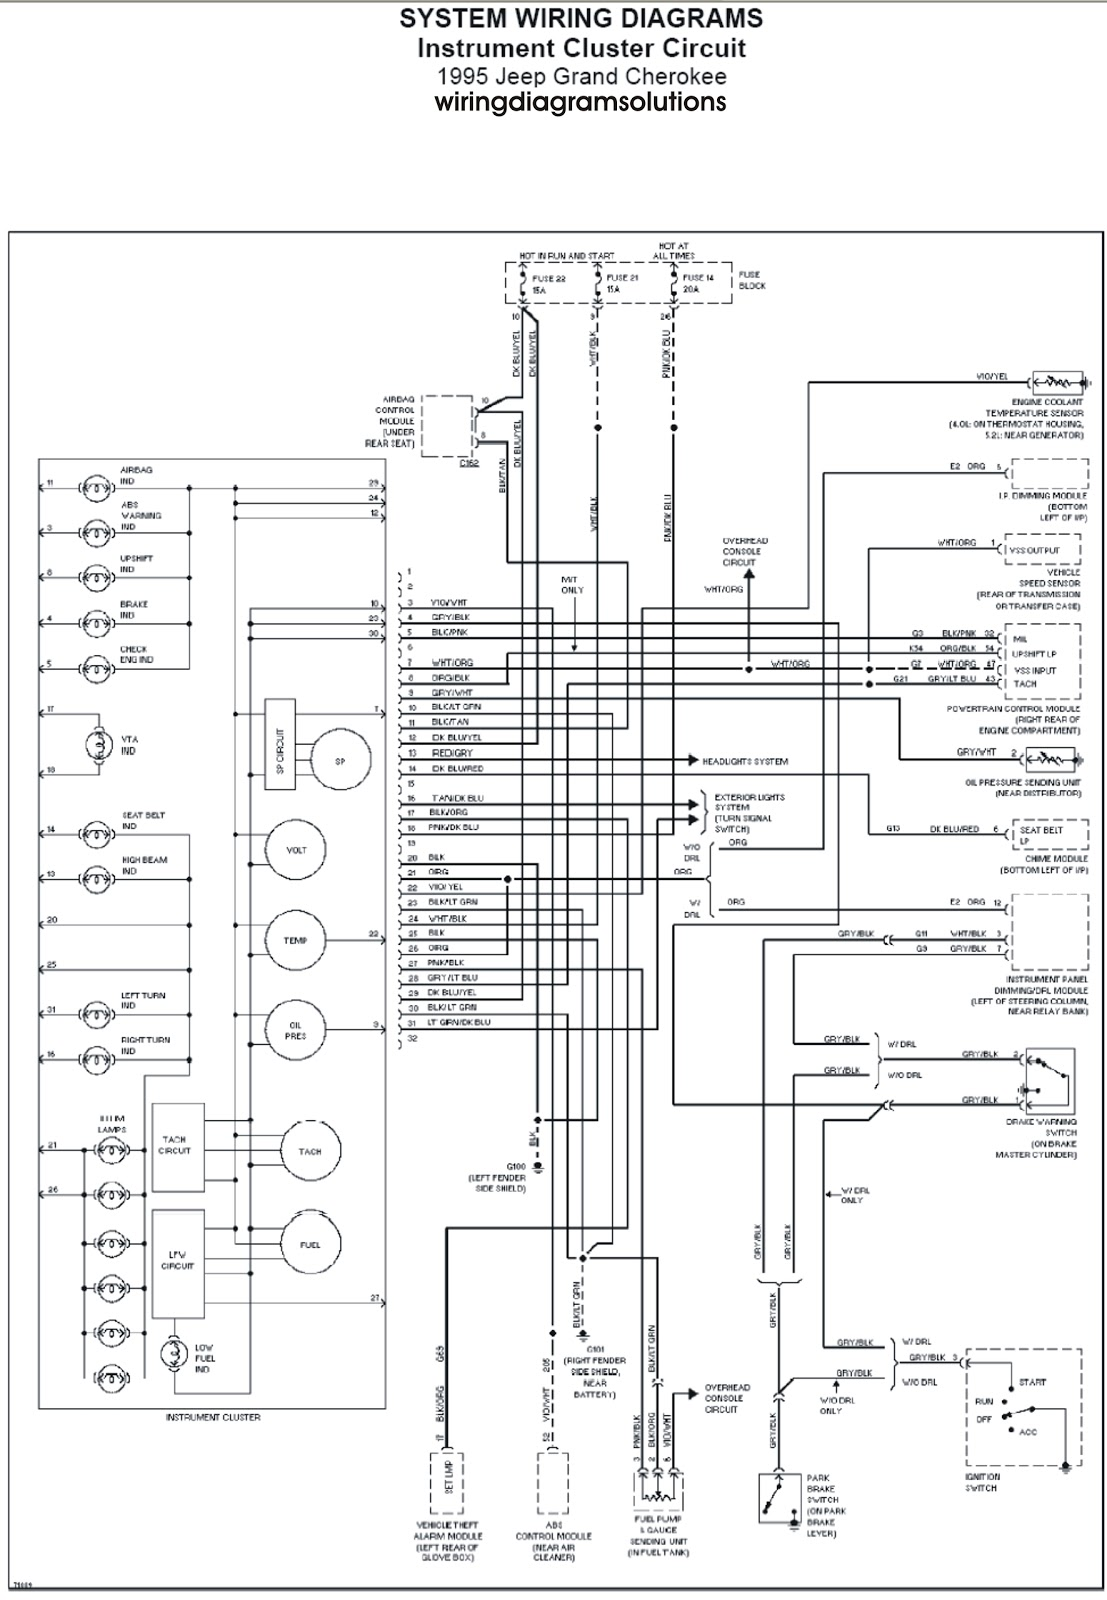 [SCHEMATICS_48IS]  8A9F 2004 Jeep Tj Wiring Schematic | Wiring Library | 2004 Jeep Wrangler Wiring Schematic |  | Wiring Library